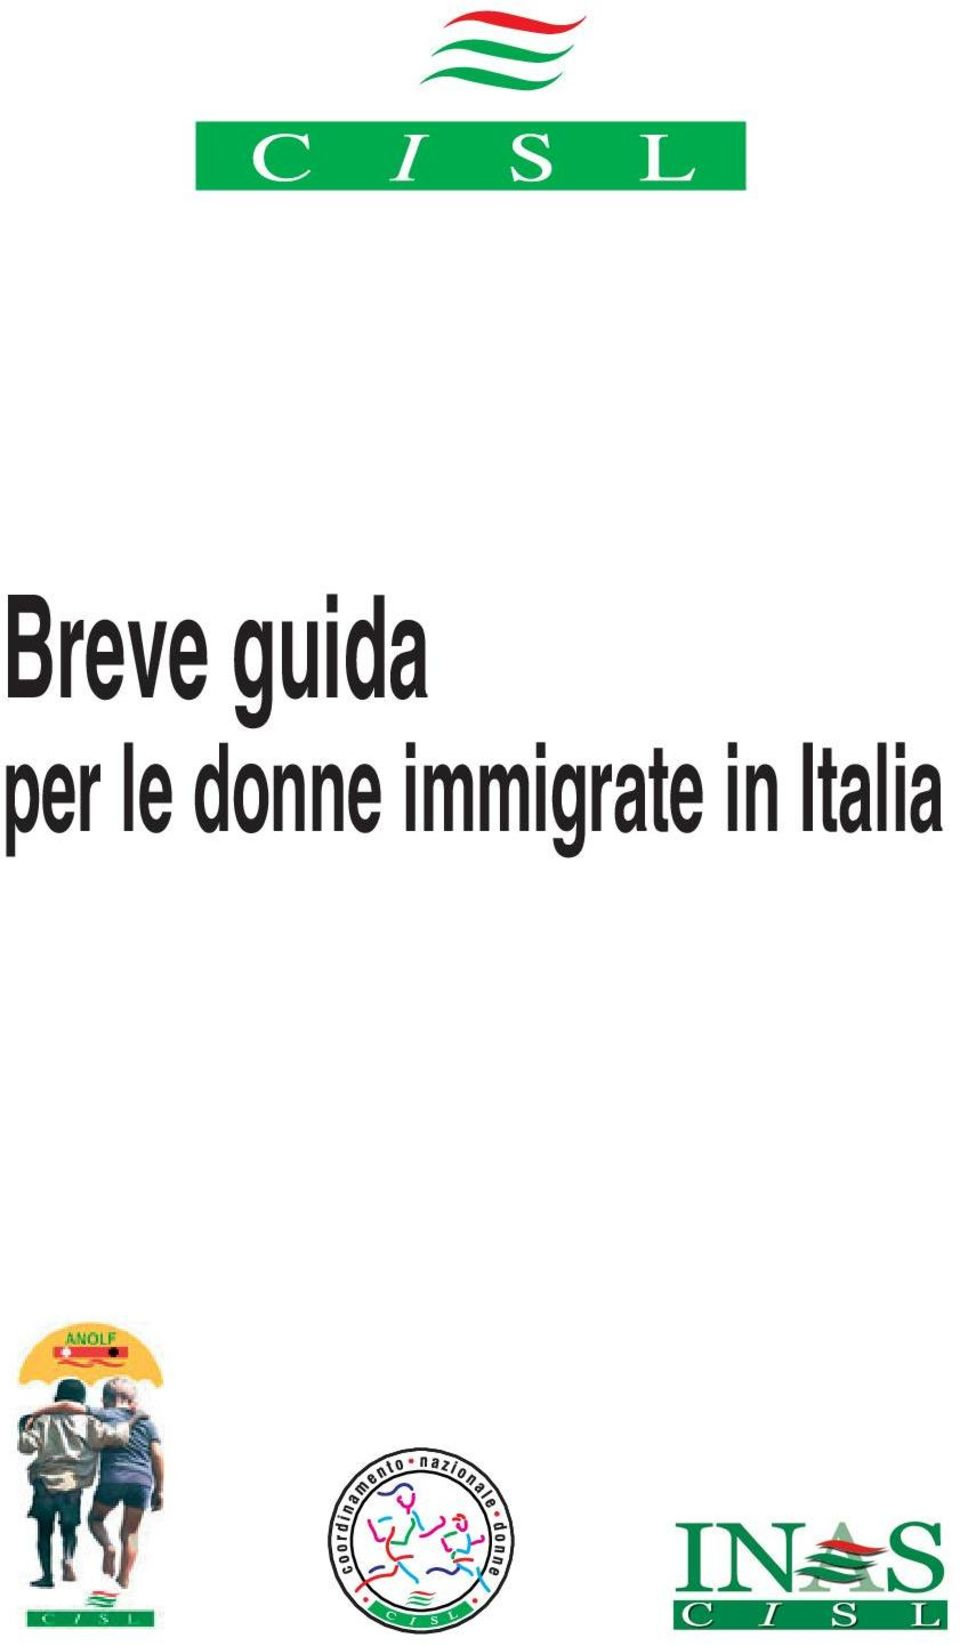 immigrate in